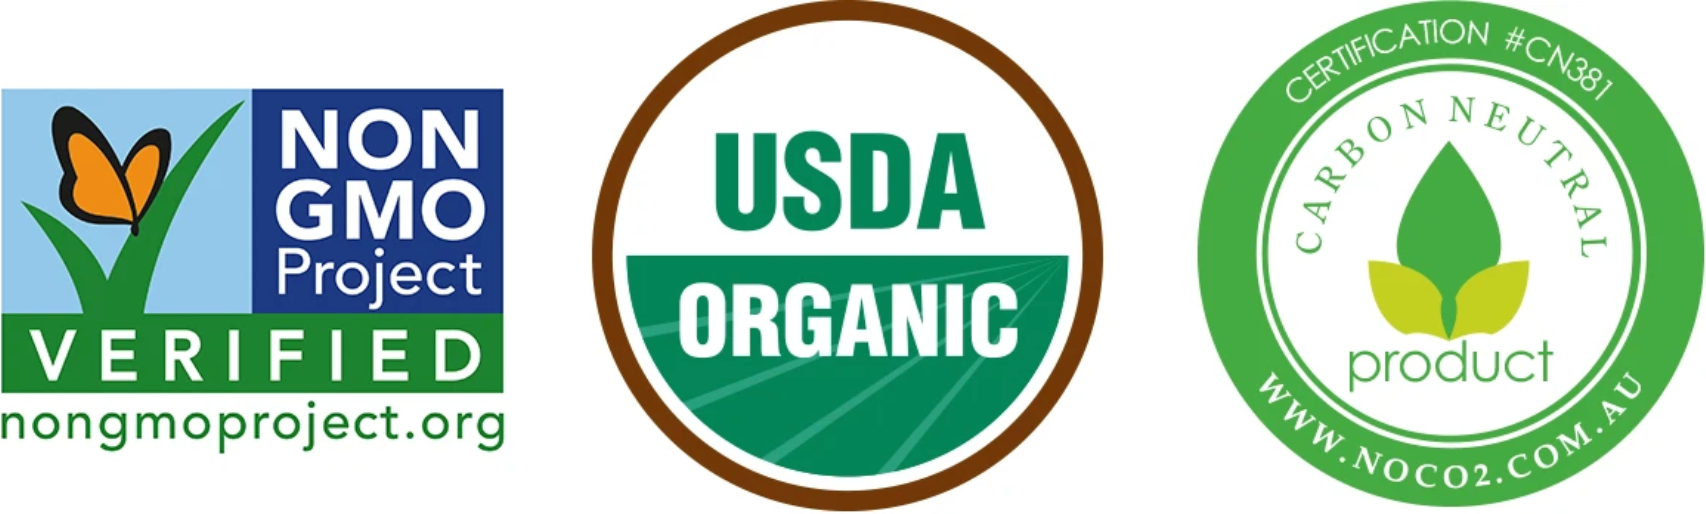 Organic Grass-fed Top Sirloin Steak non-gmo project verified usda organic carbon neutral animal welfare Certifications